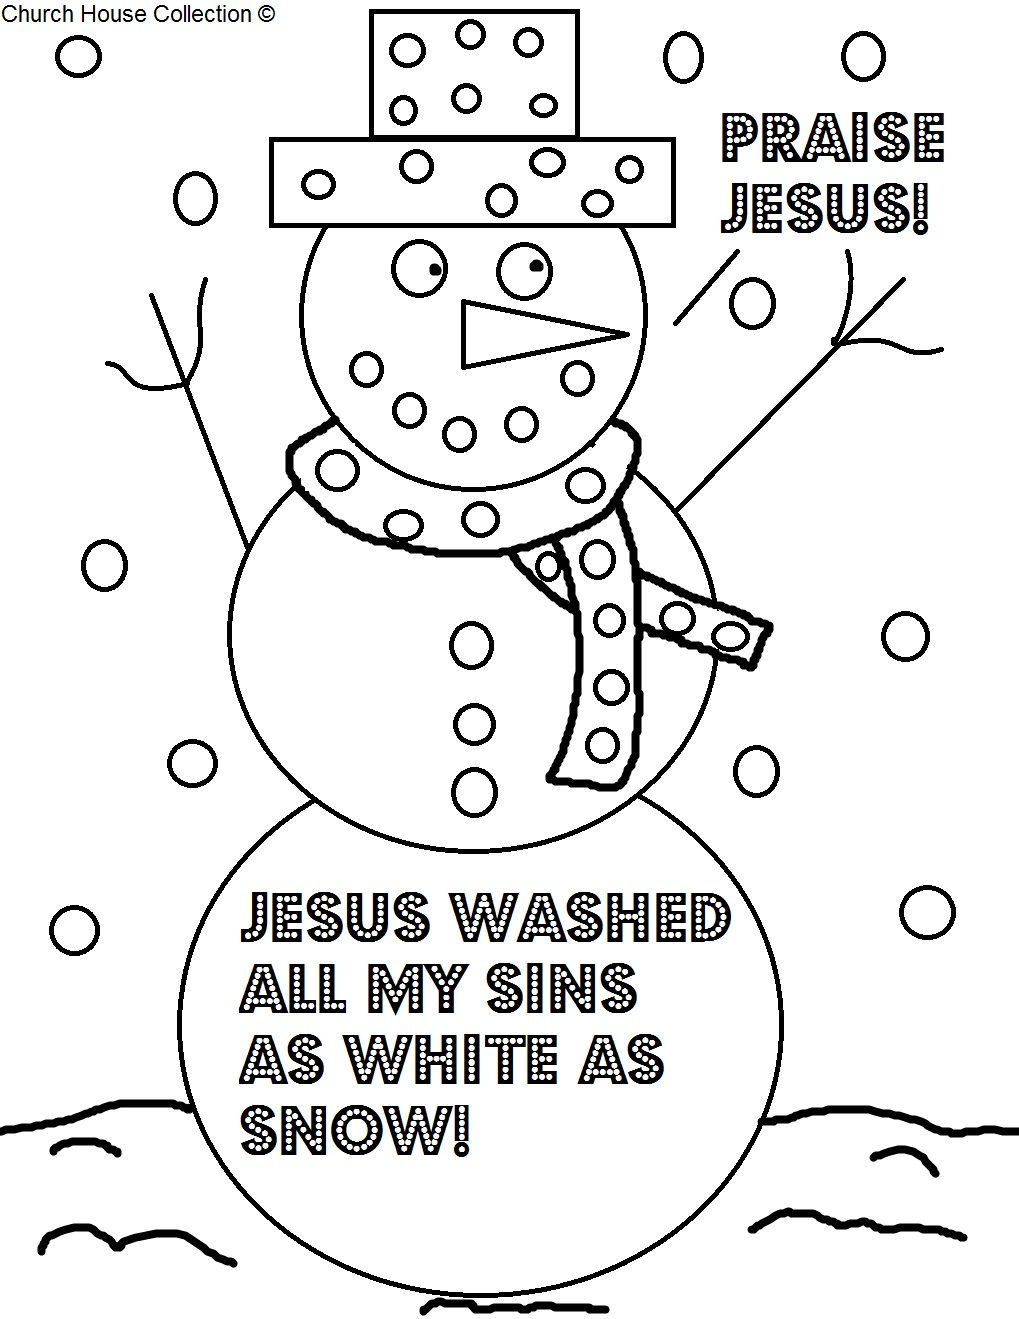 Uncategorized Coloring Pages For Church church house collection blog christmas coloring page for sunday school snowman praise jesus coloring